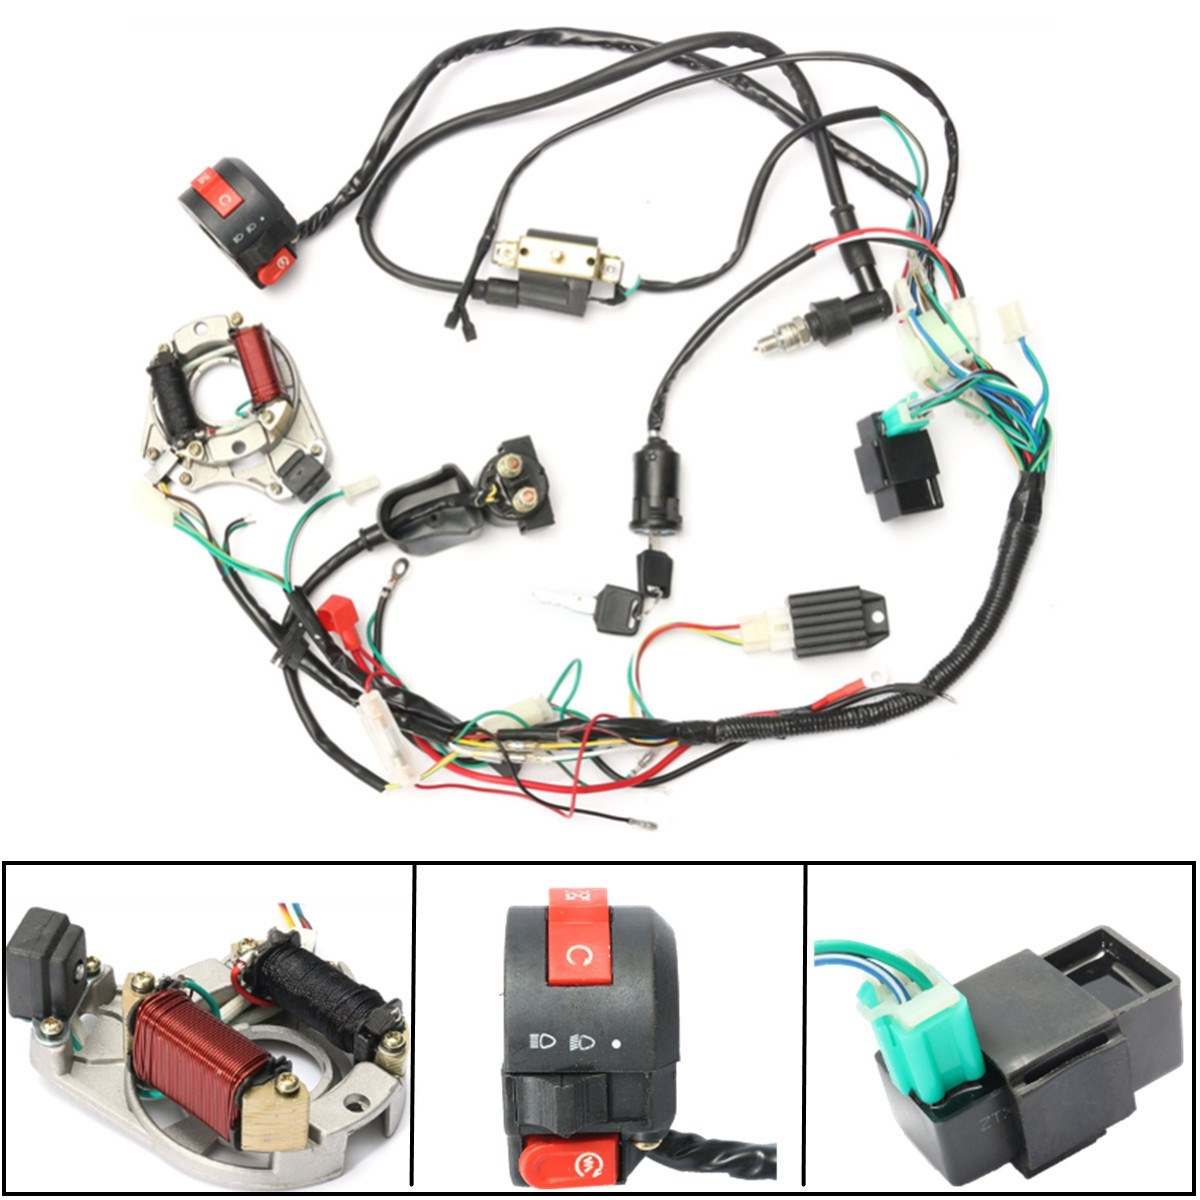 50 70 90 110cc cdi wire harness assembly wiring kit set for atv rh aliexpress com 50's wiring harness jonesy 50's wiring harness